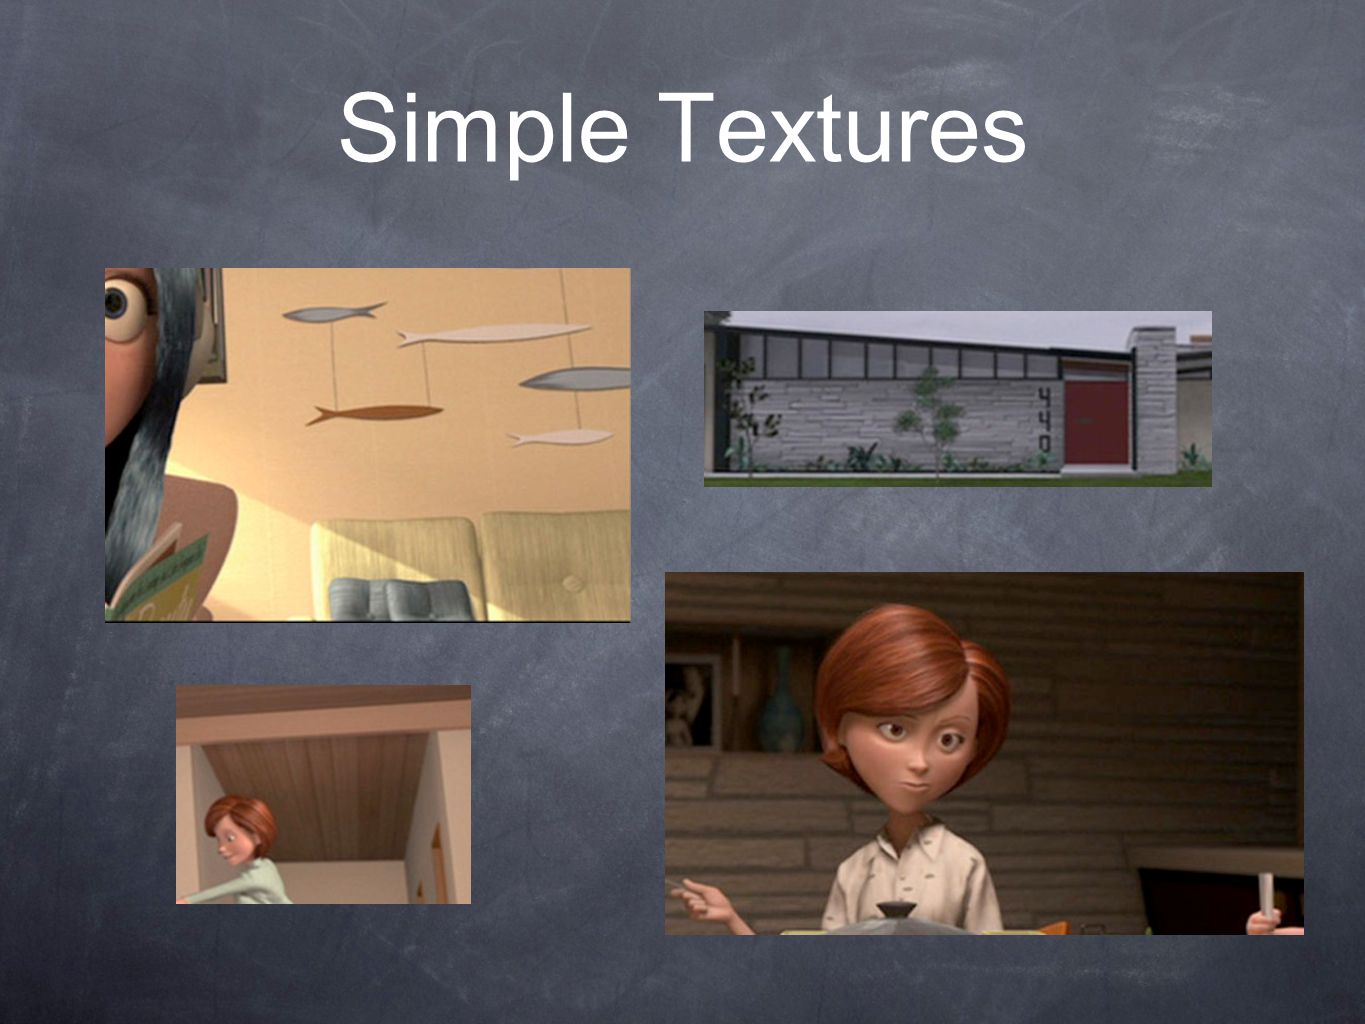 Simple Textures